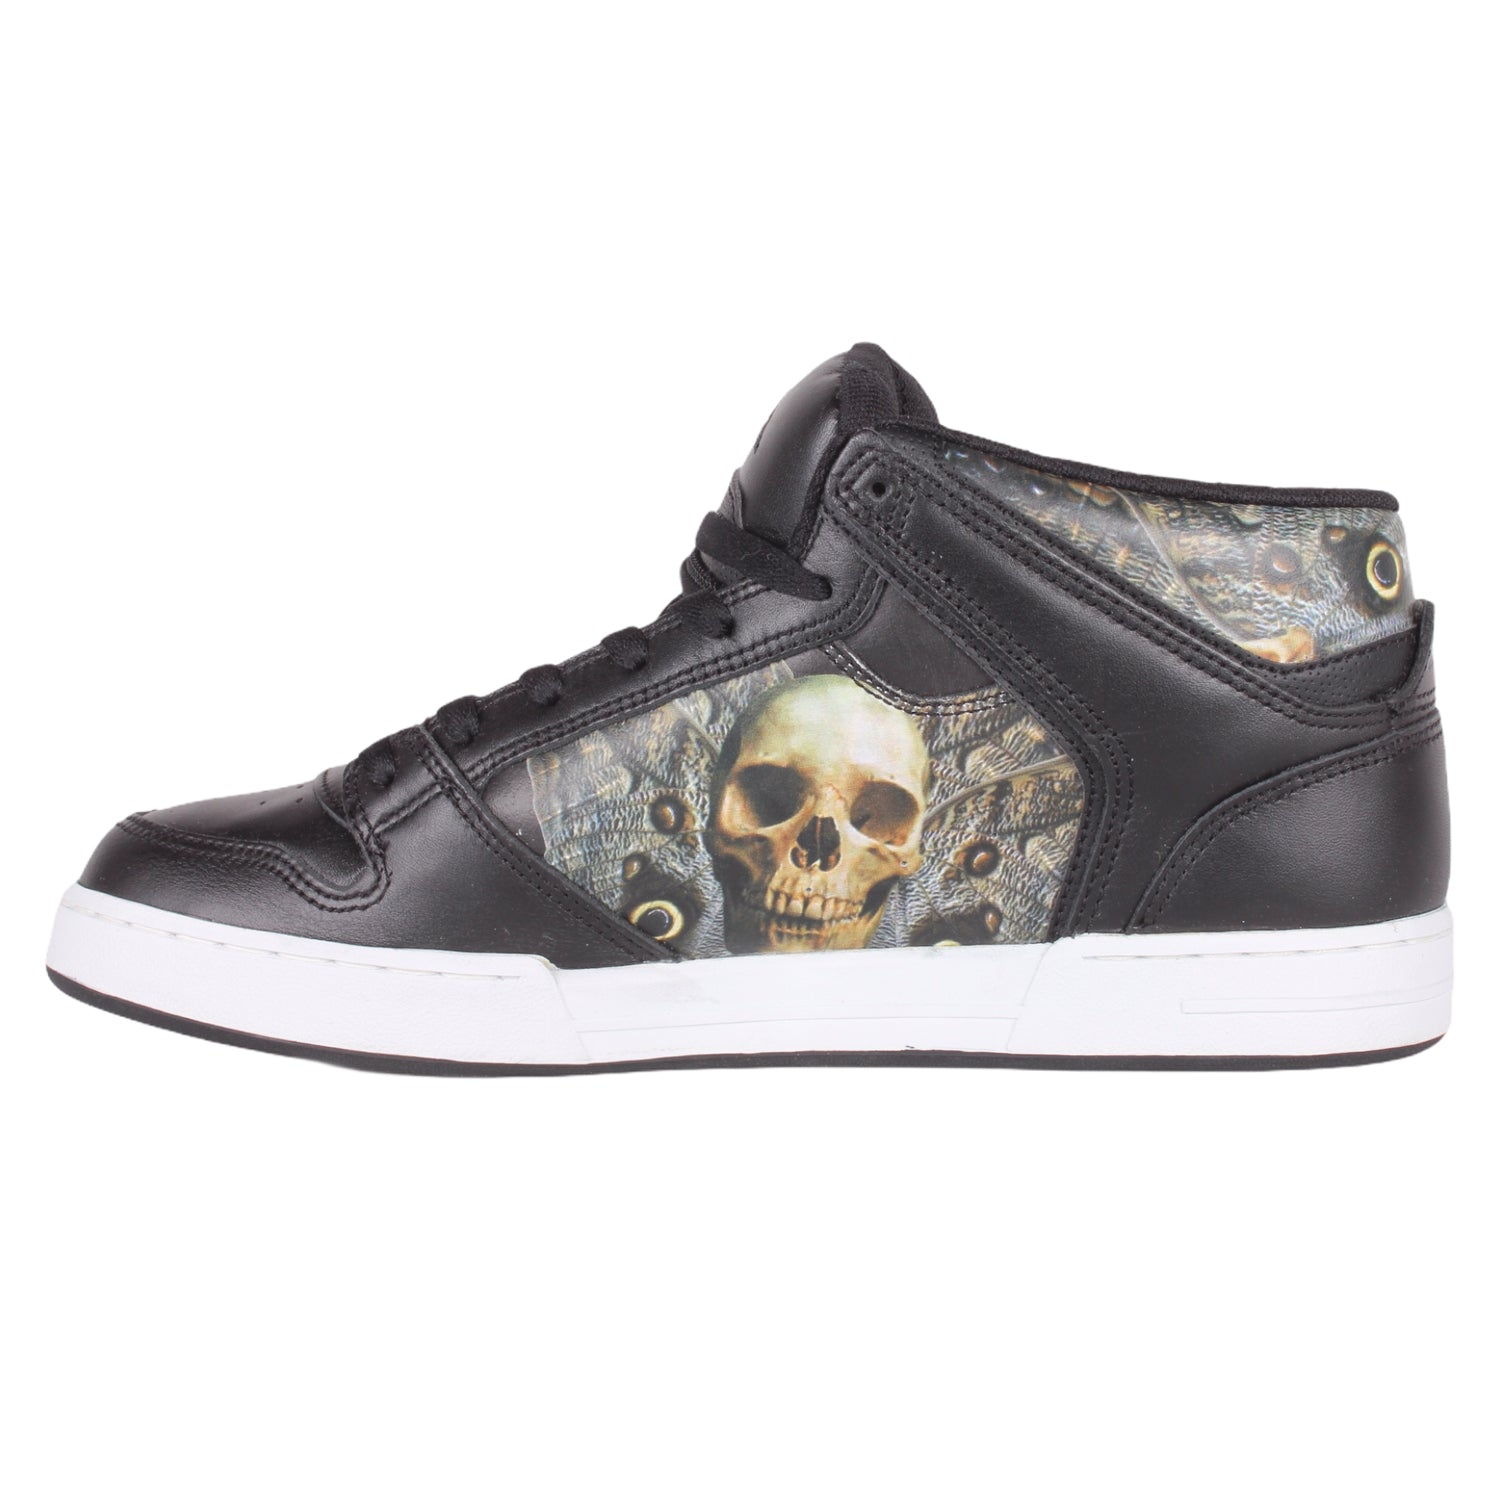 Overripe Lakai Carroll 4 Mid LTD Sk8 Fairy Print Black (2006)